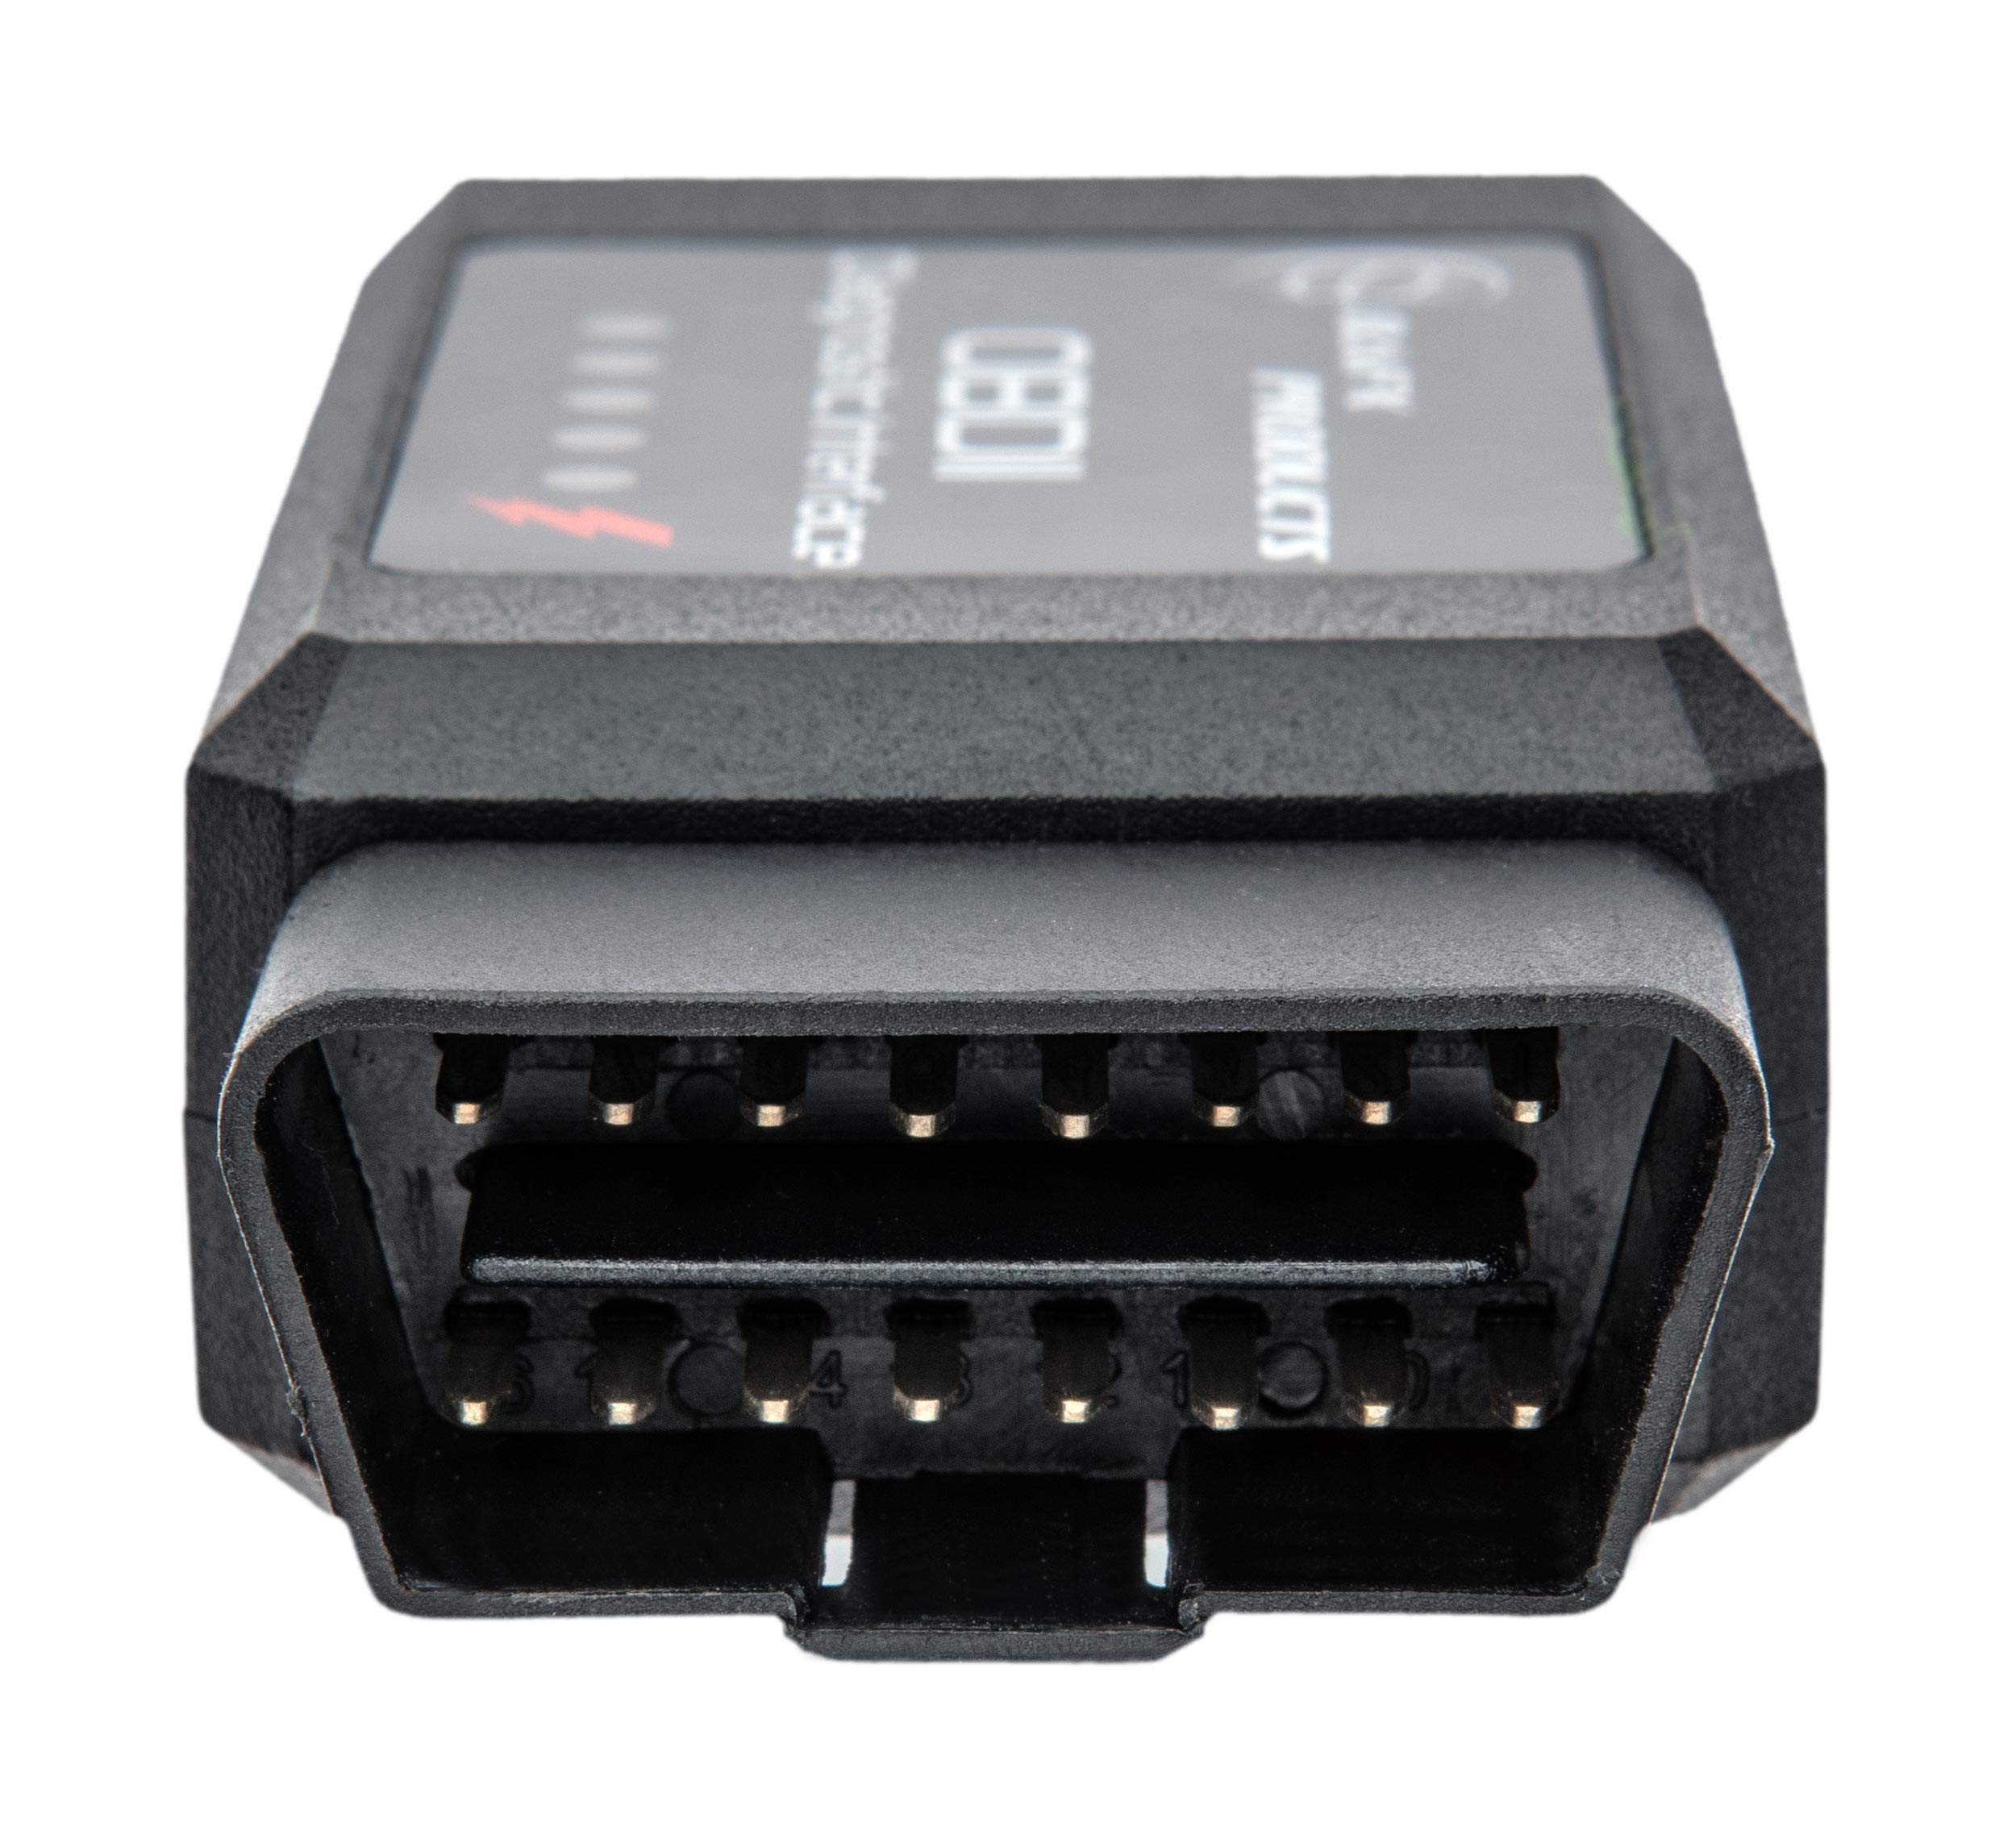 BAFX Products Bluetooth OBD2 / OBDII Diagnostic Car Scanner Reader Tool for Android by BAFX Products (Image #4)